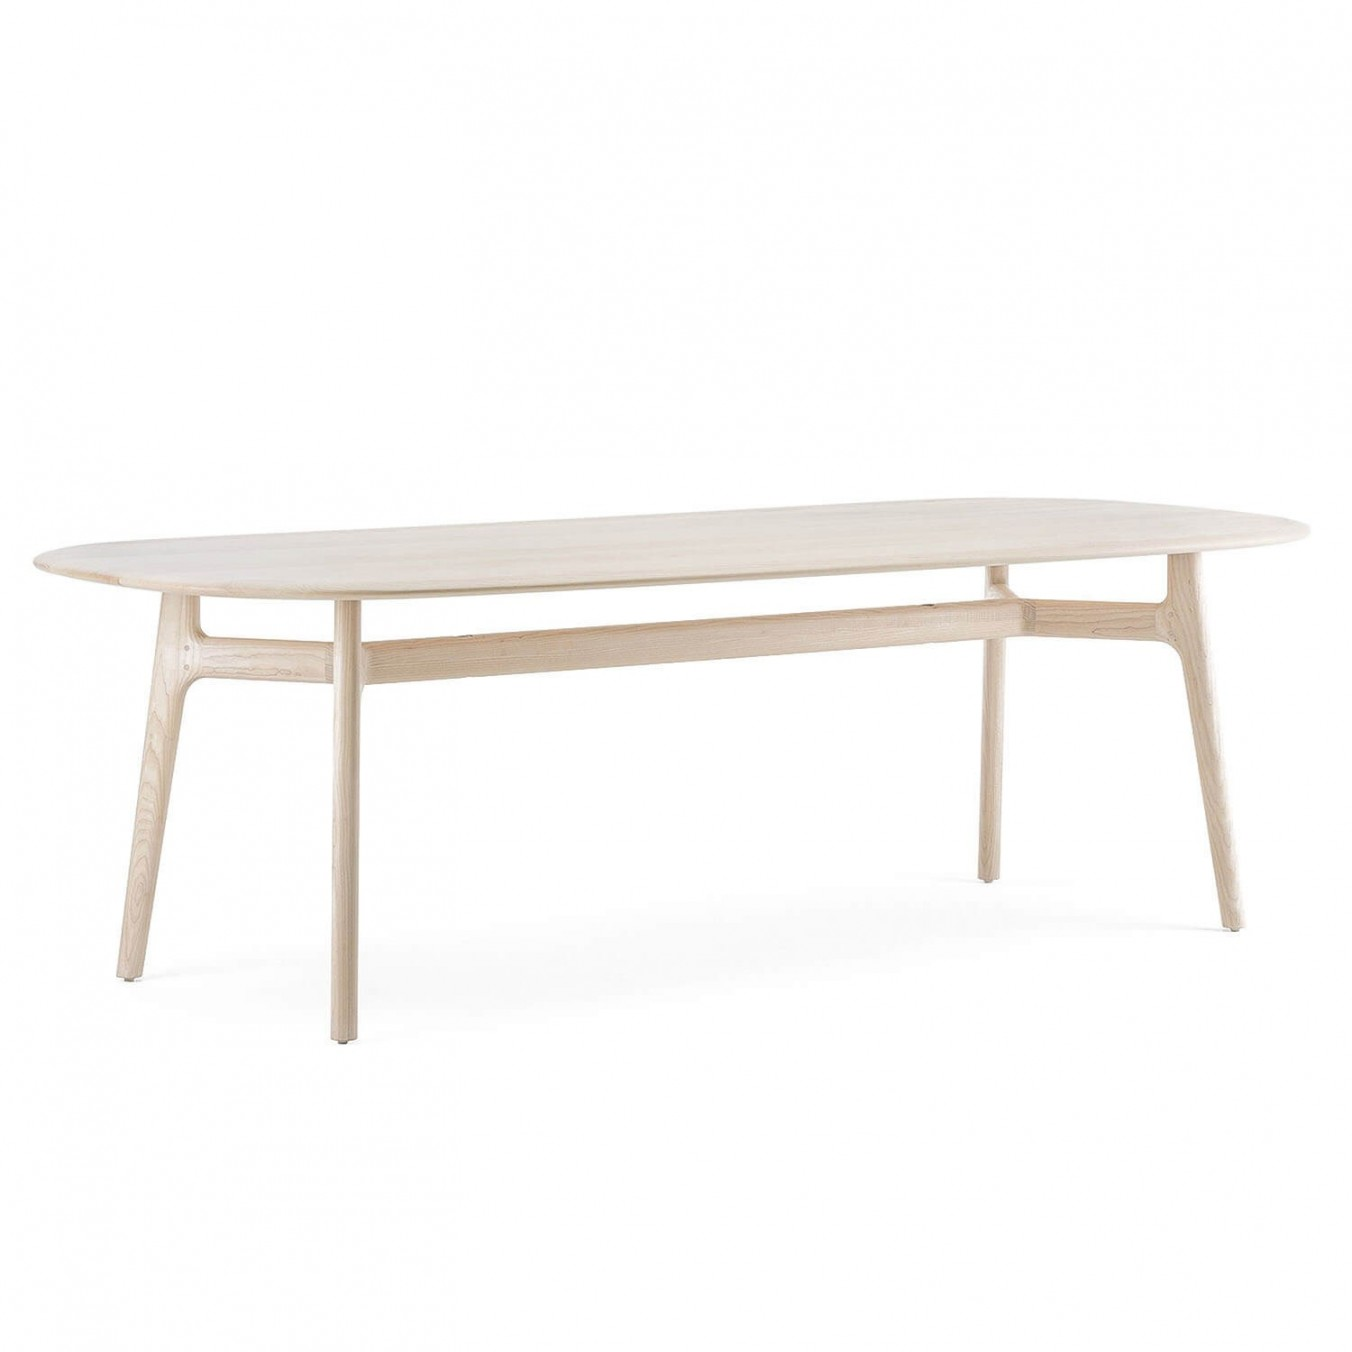 SOLO OBLONG TABLE